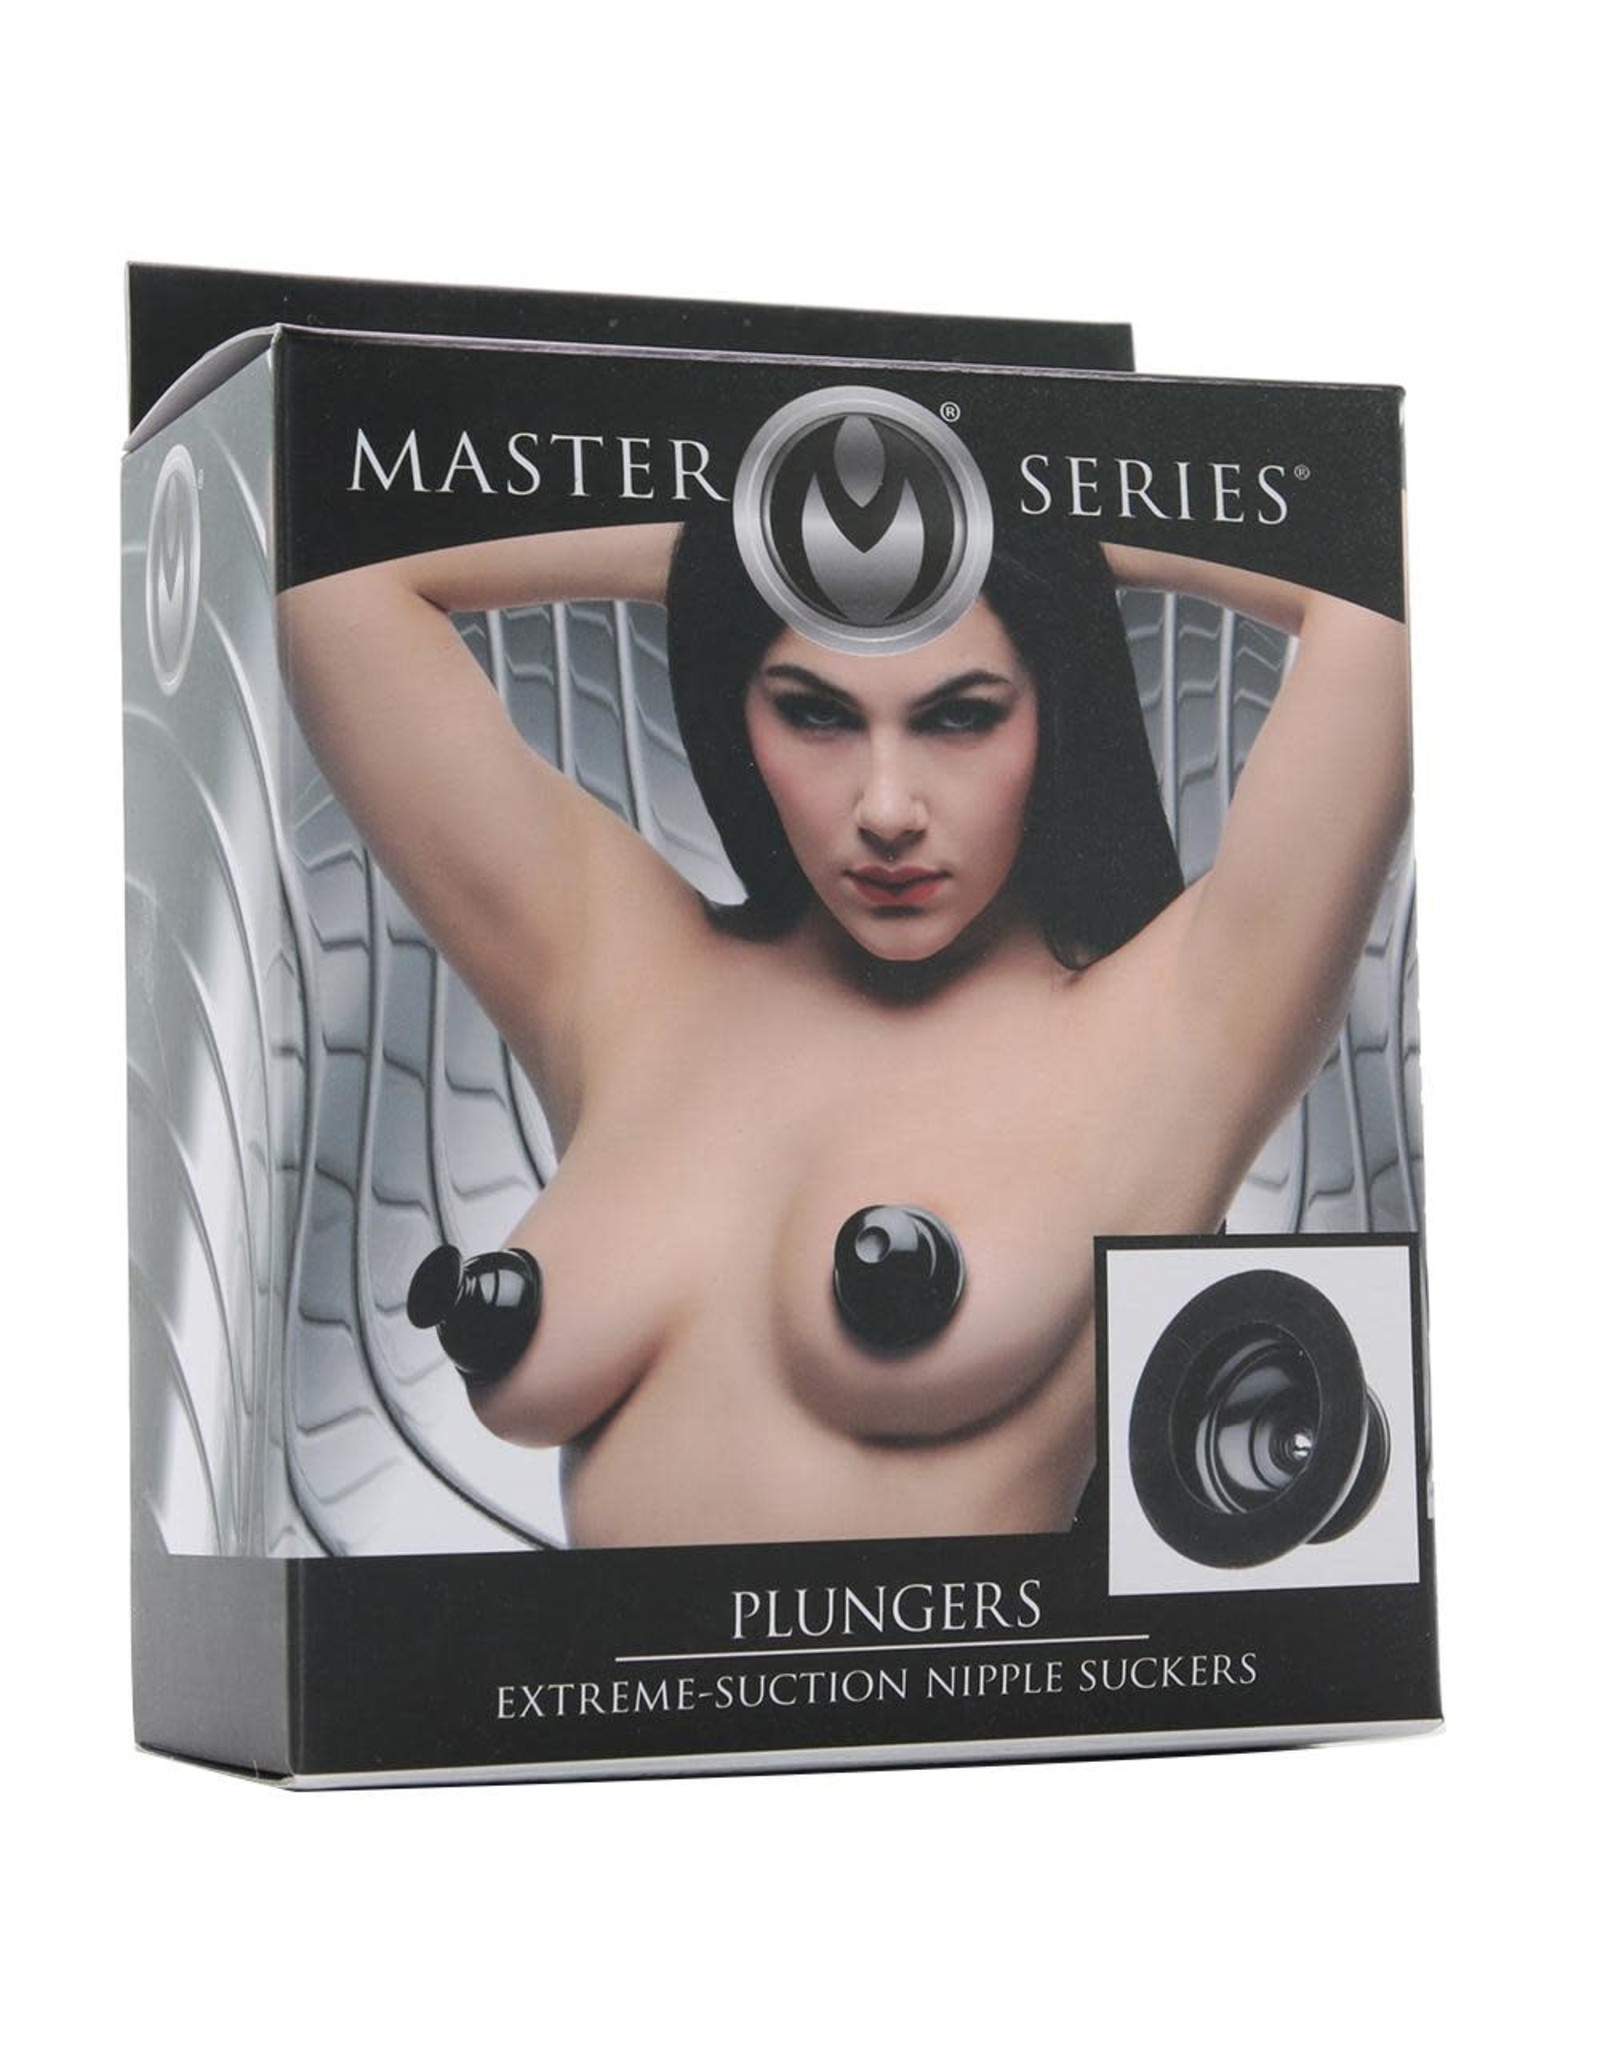 MASTER SERIES MASTER SERIES - PLUNGERS - EXTREME NIPPLE SUCKERS